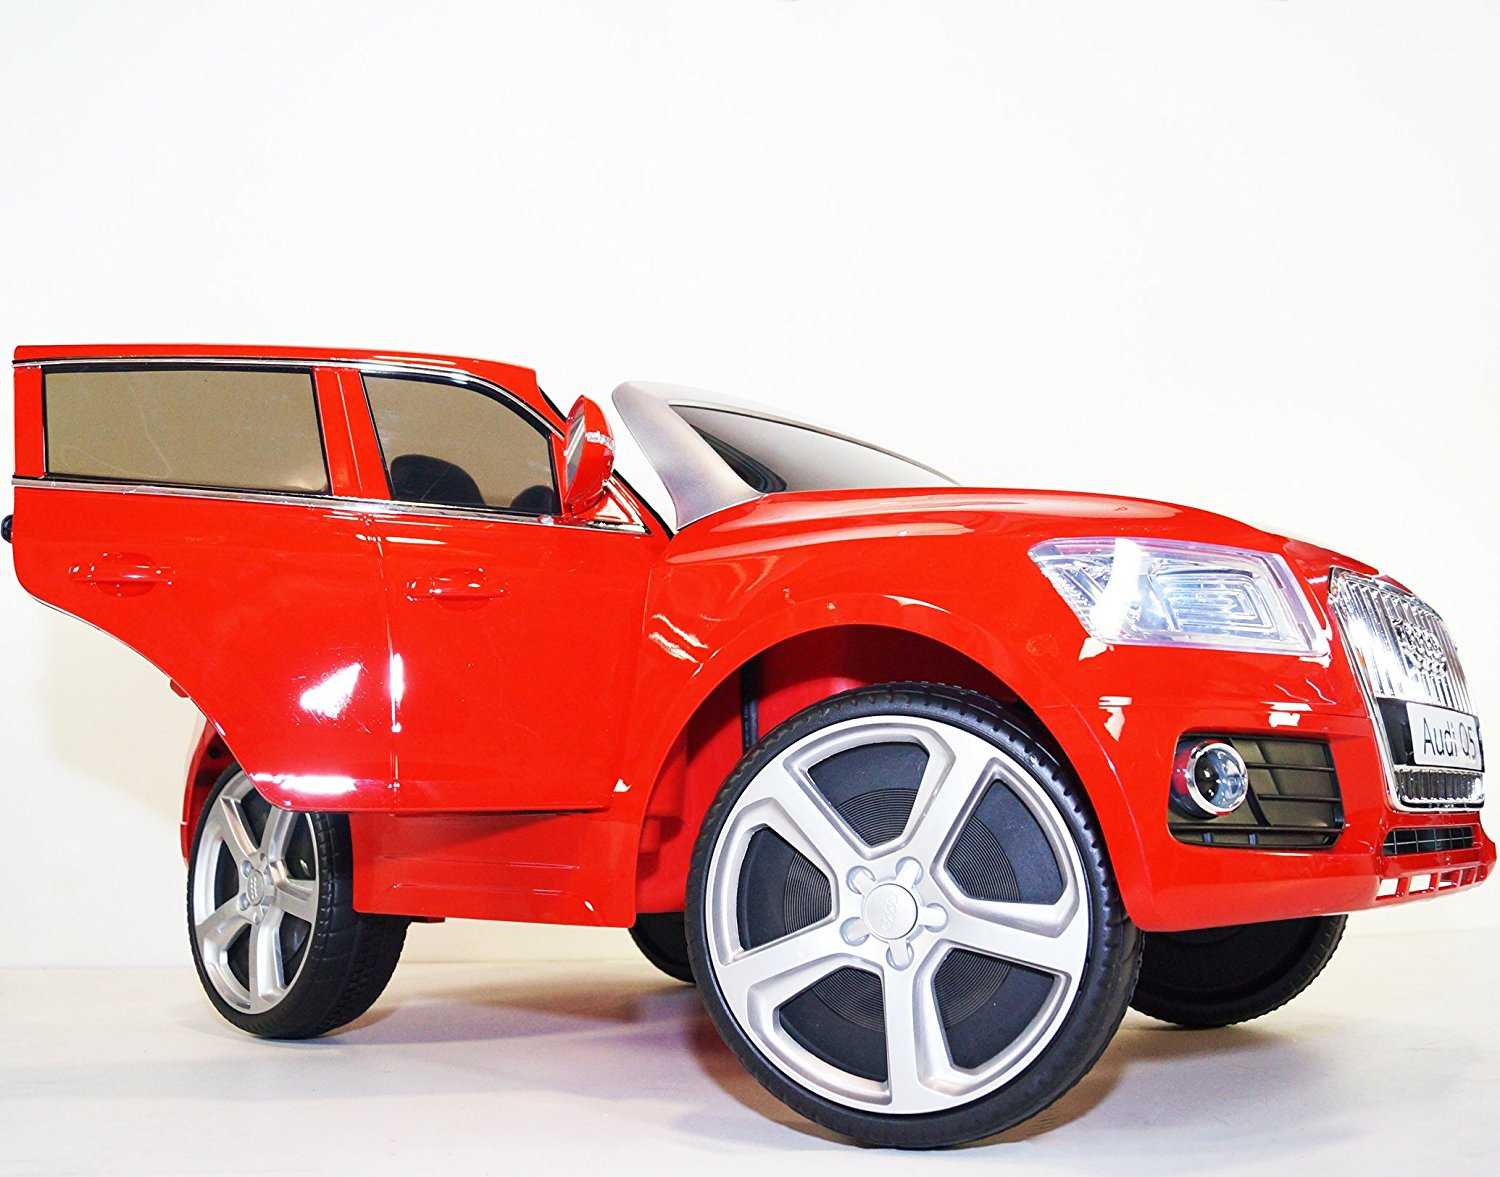 Ride on car AUDI licensed. 3 speed. Electric car Q5 with remote control. Battery operated car for kids. Two motors. Total 12v. Electric car for kids to ride from 2 to 6 years. Powered riding toys.